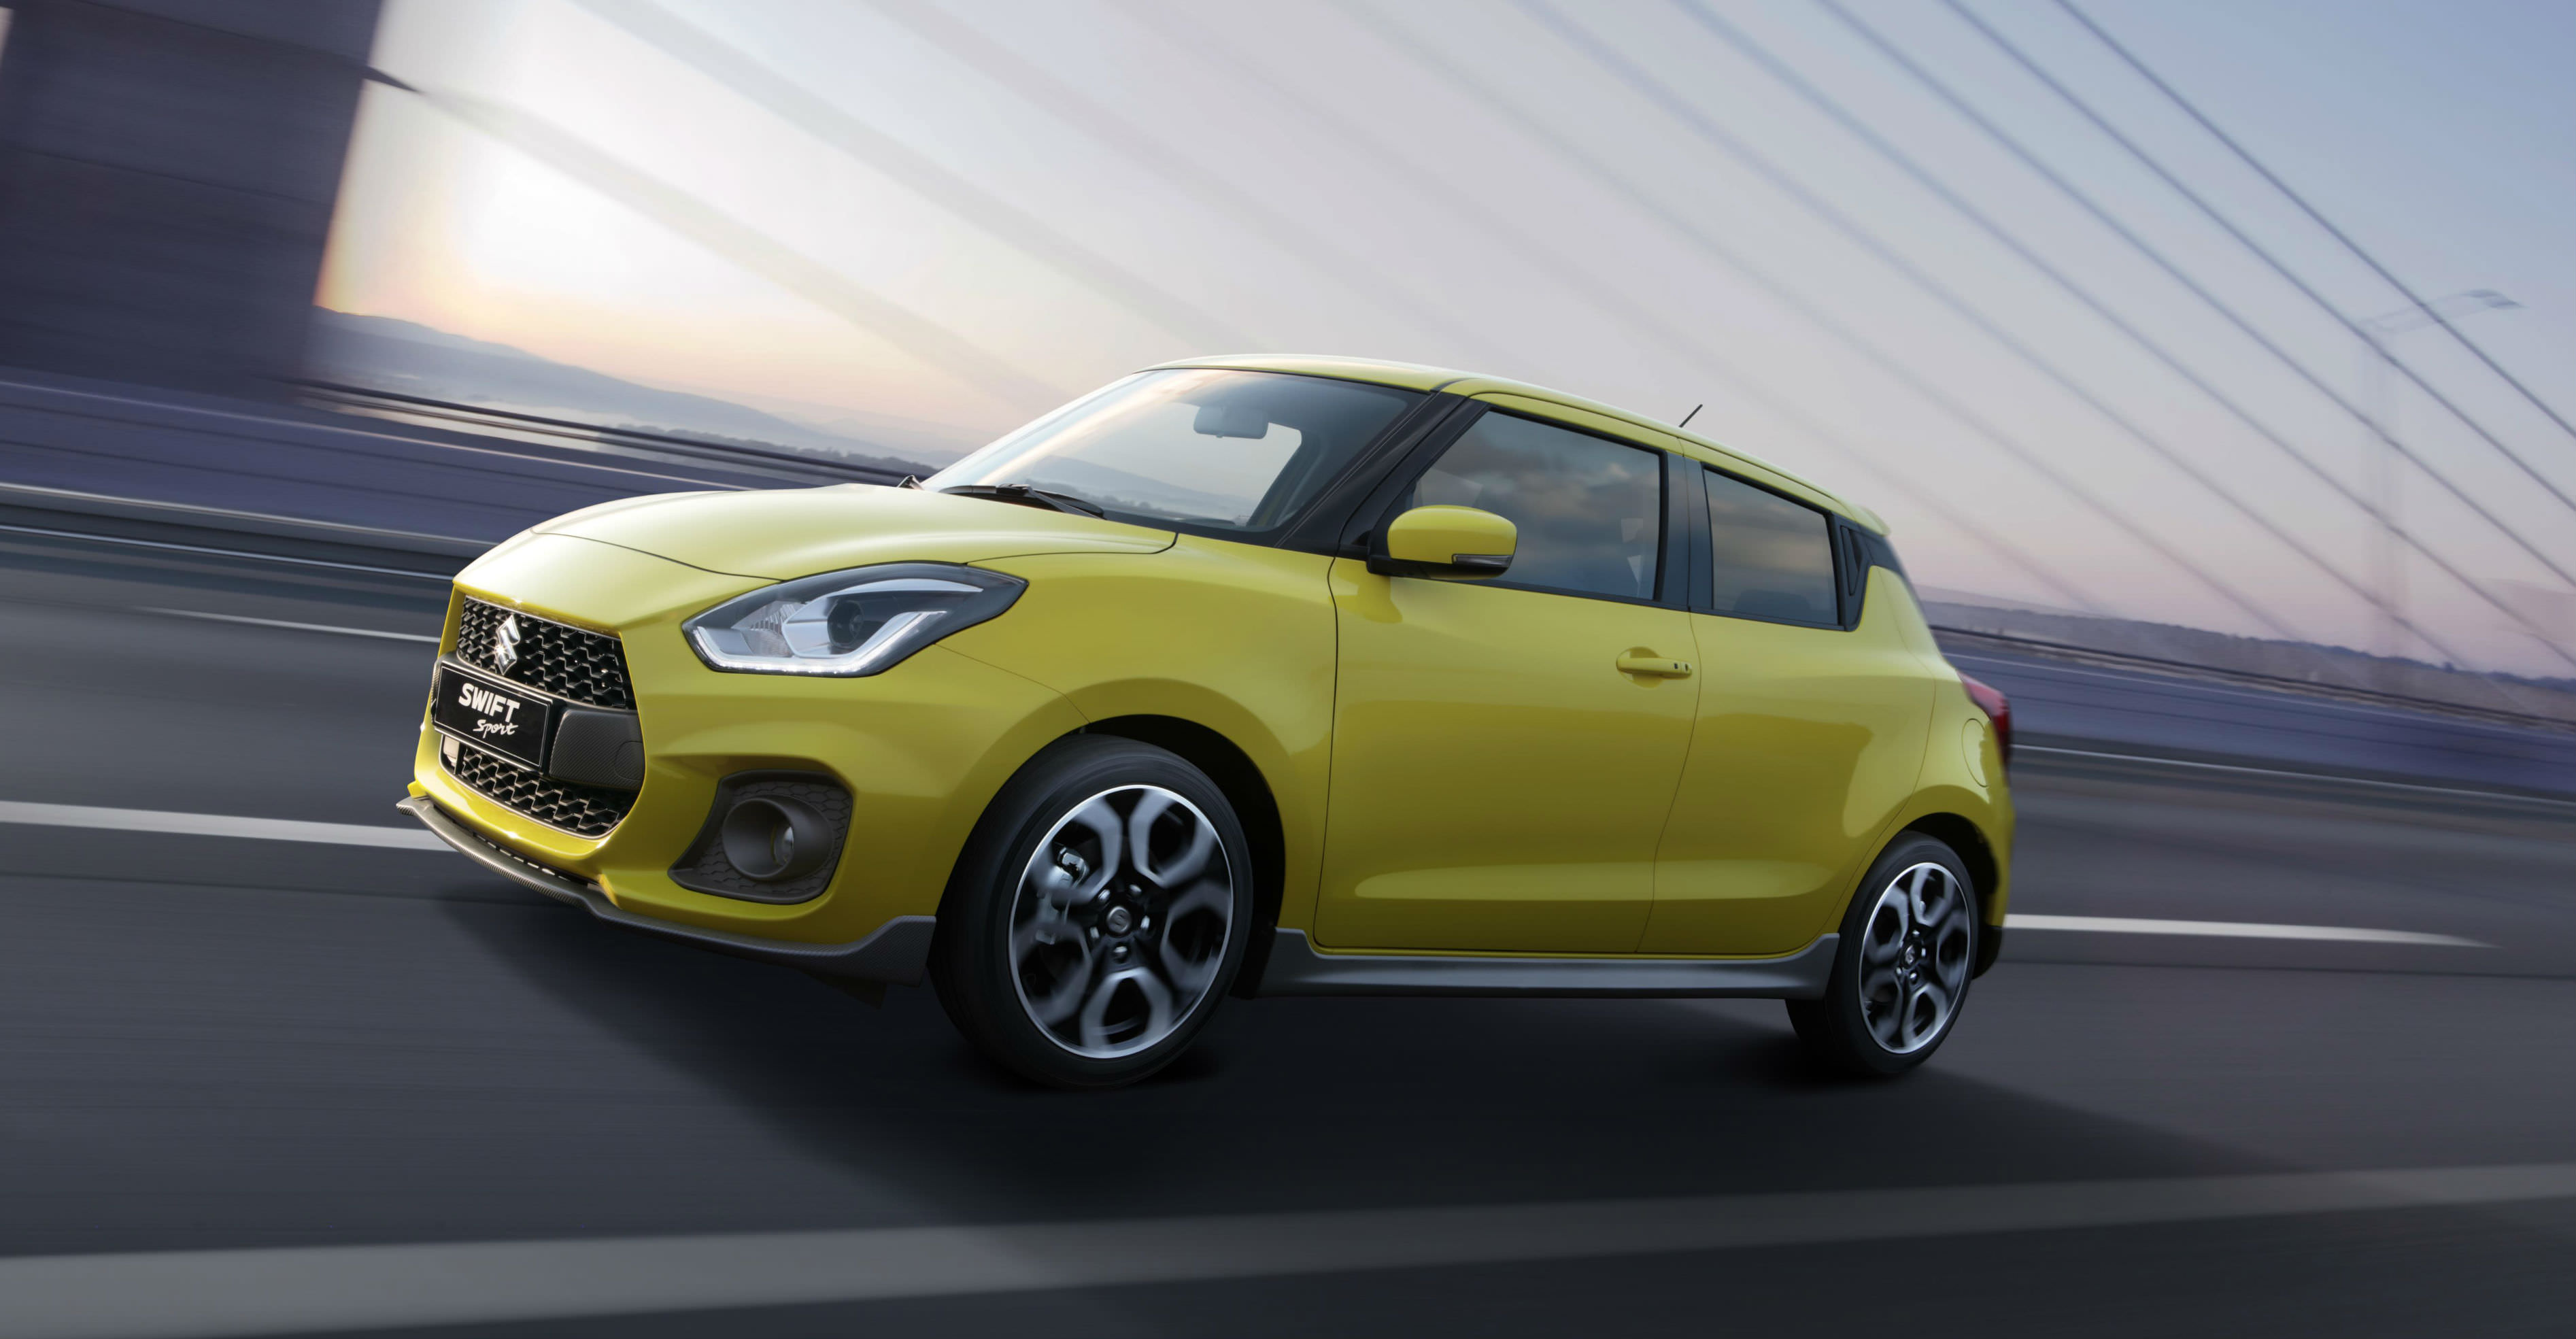 image of a yellow suzuki swift concept car at frankfurt motor show 2017